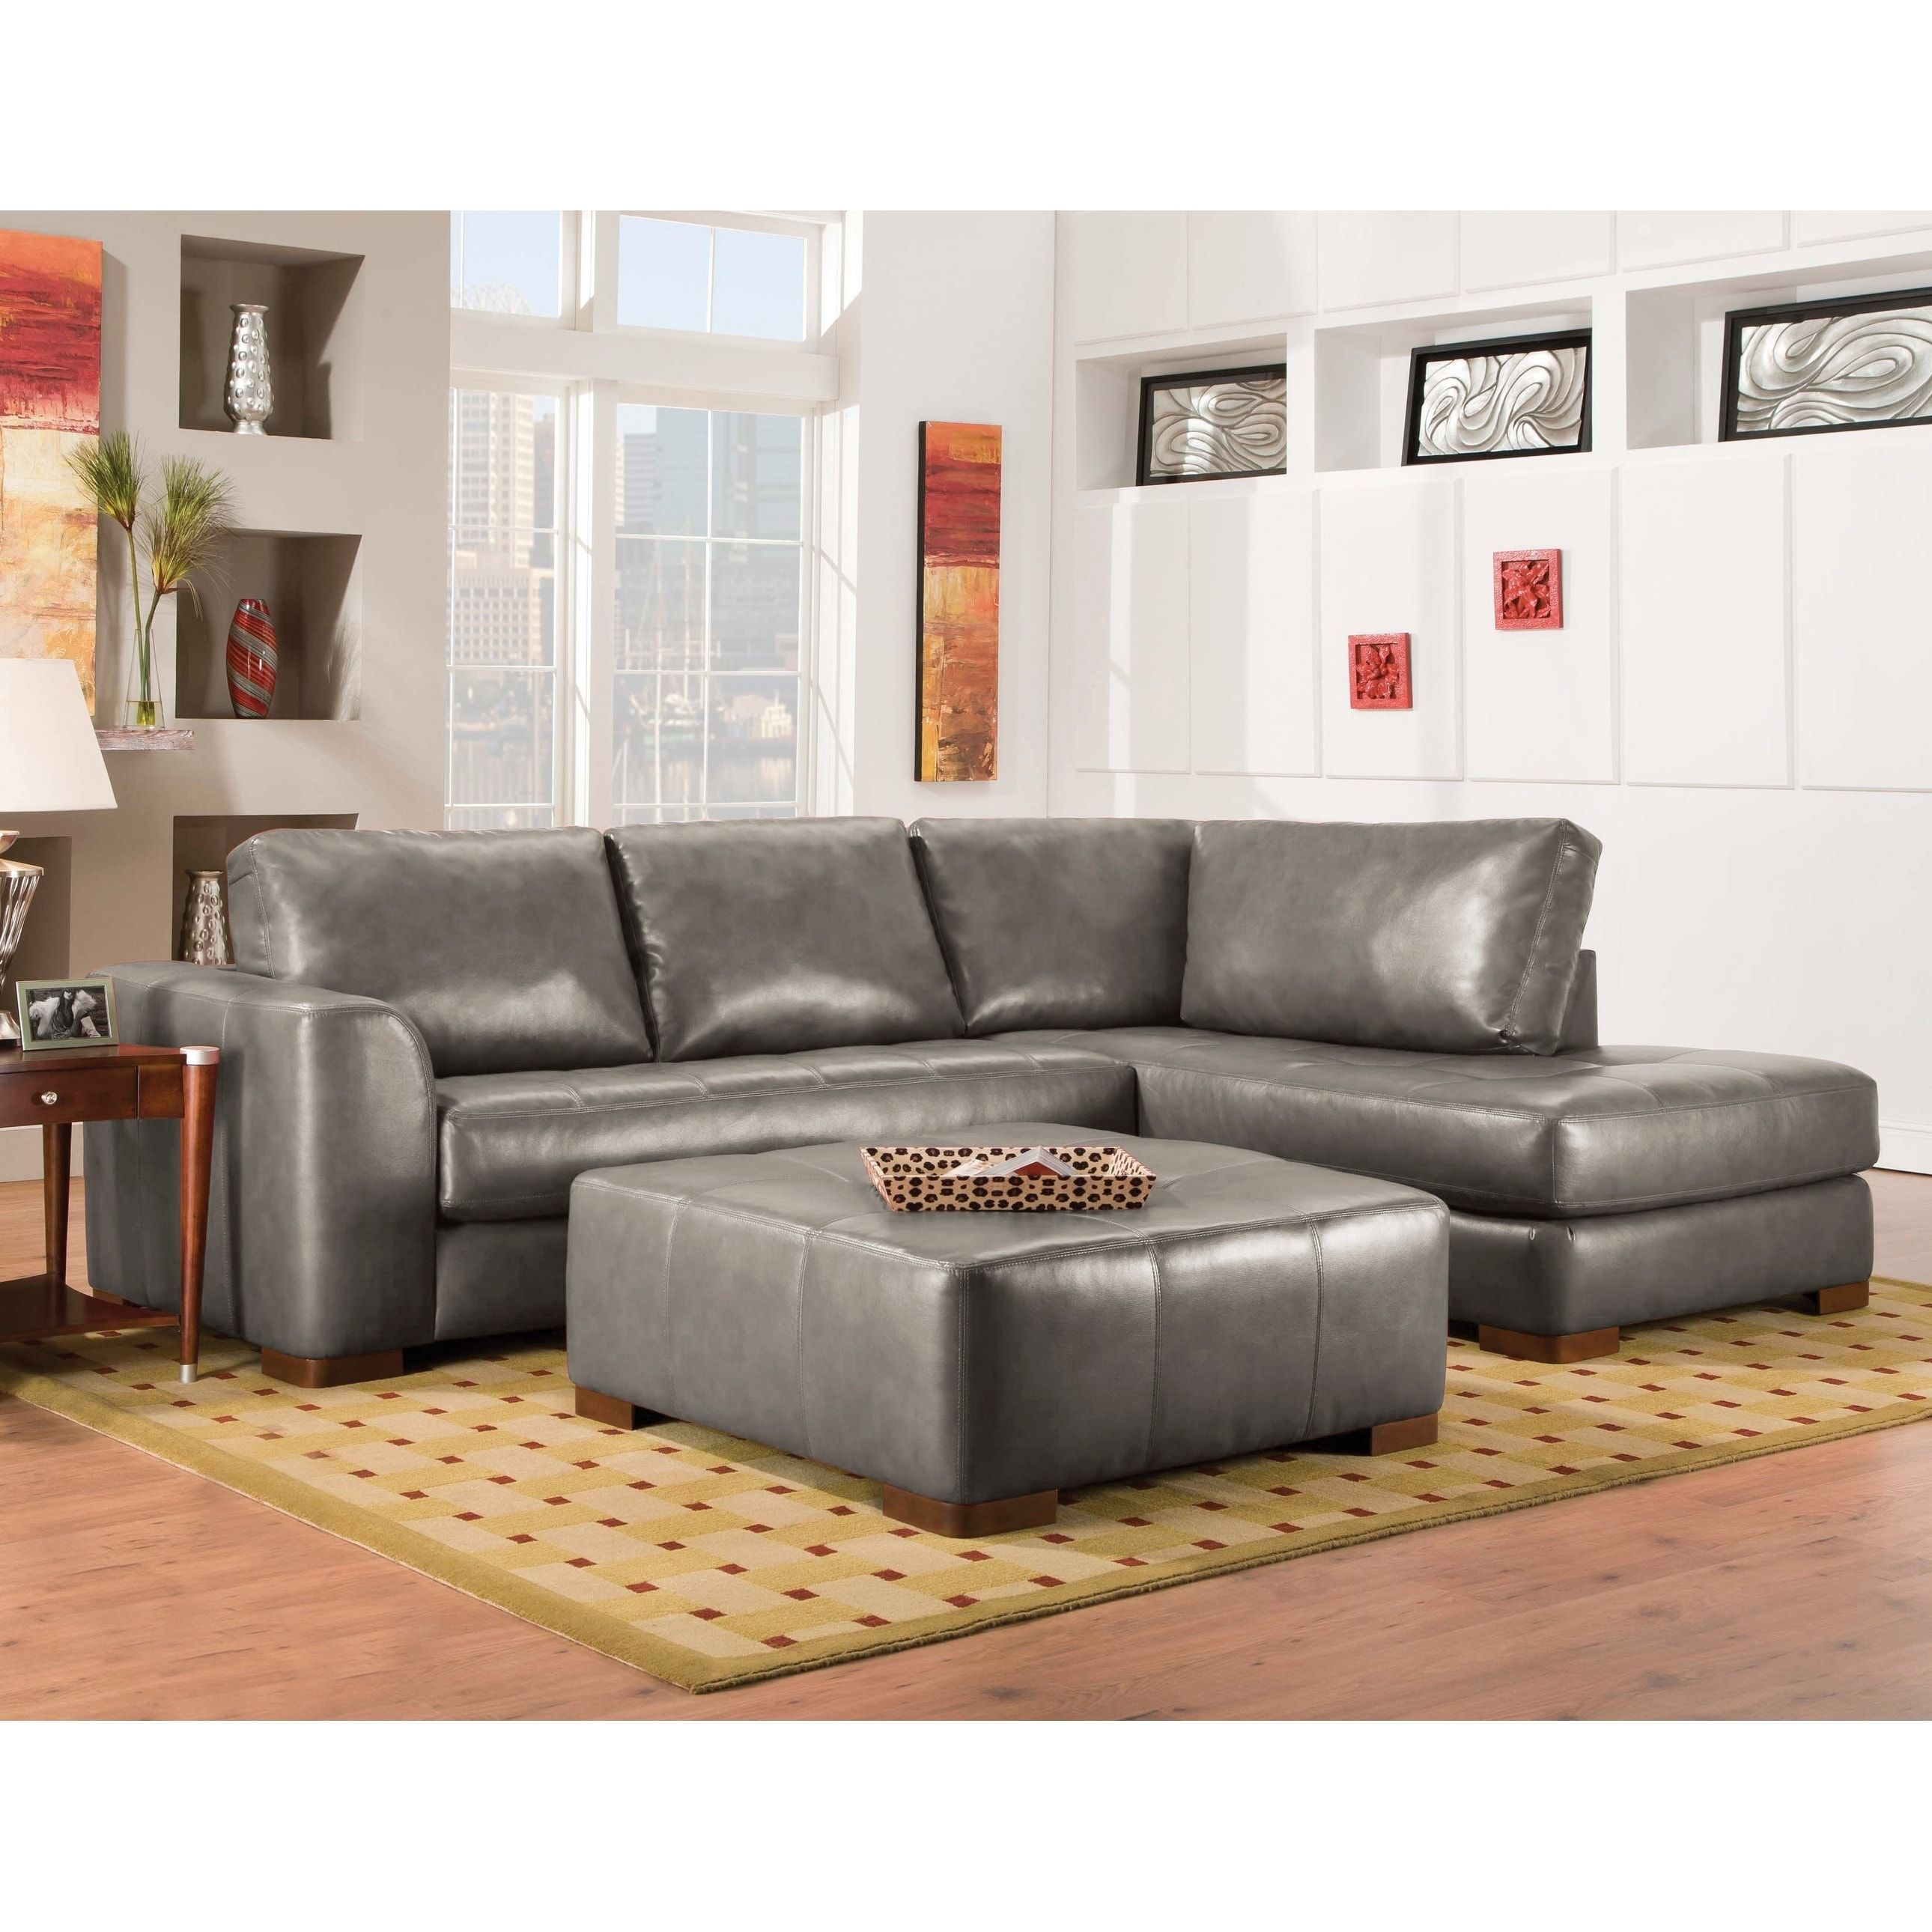 Marvelous Sofatrendz Bonded Leather Sectional And Ottoman Set Brown Spiritservingveterans Wood Chair Design Ideas Spiritservingveteransorg